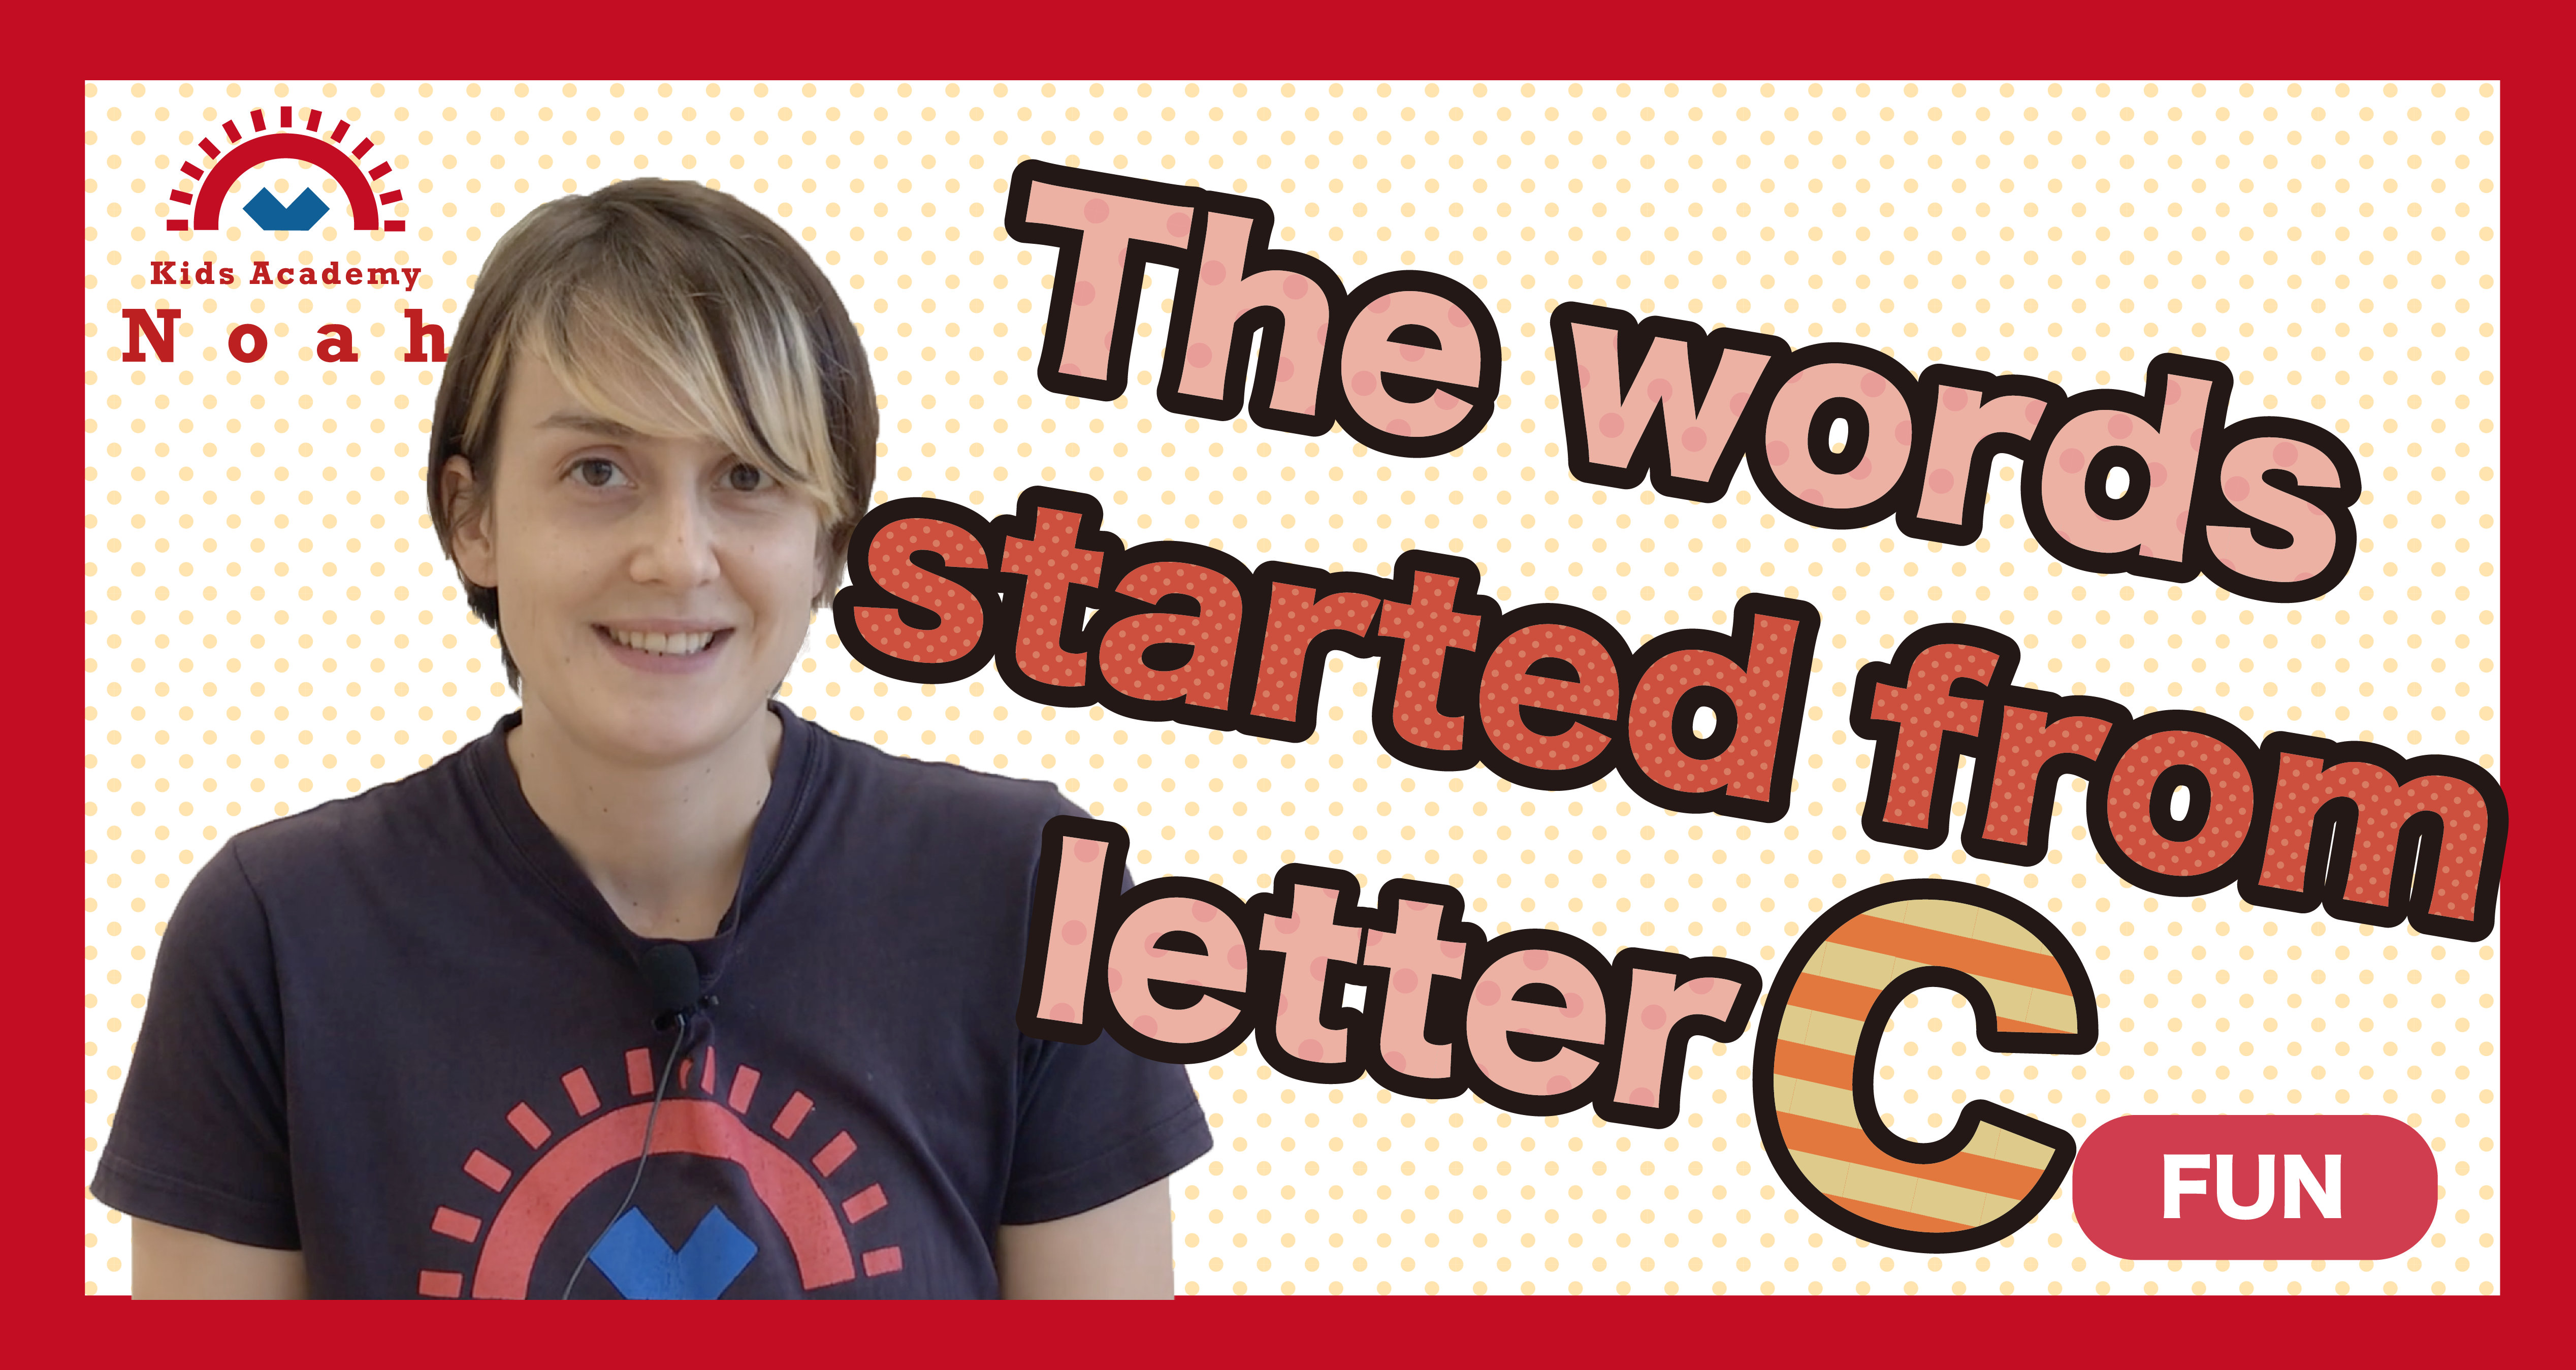 The words started from letter C-FUN-